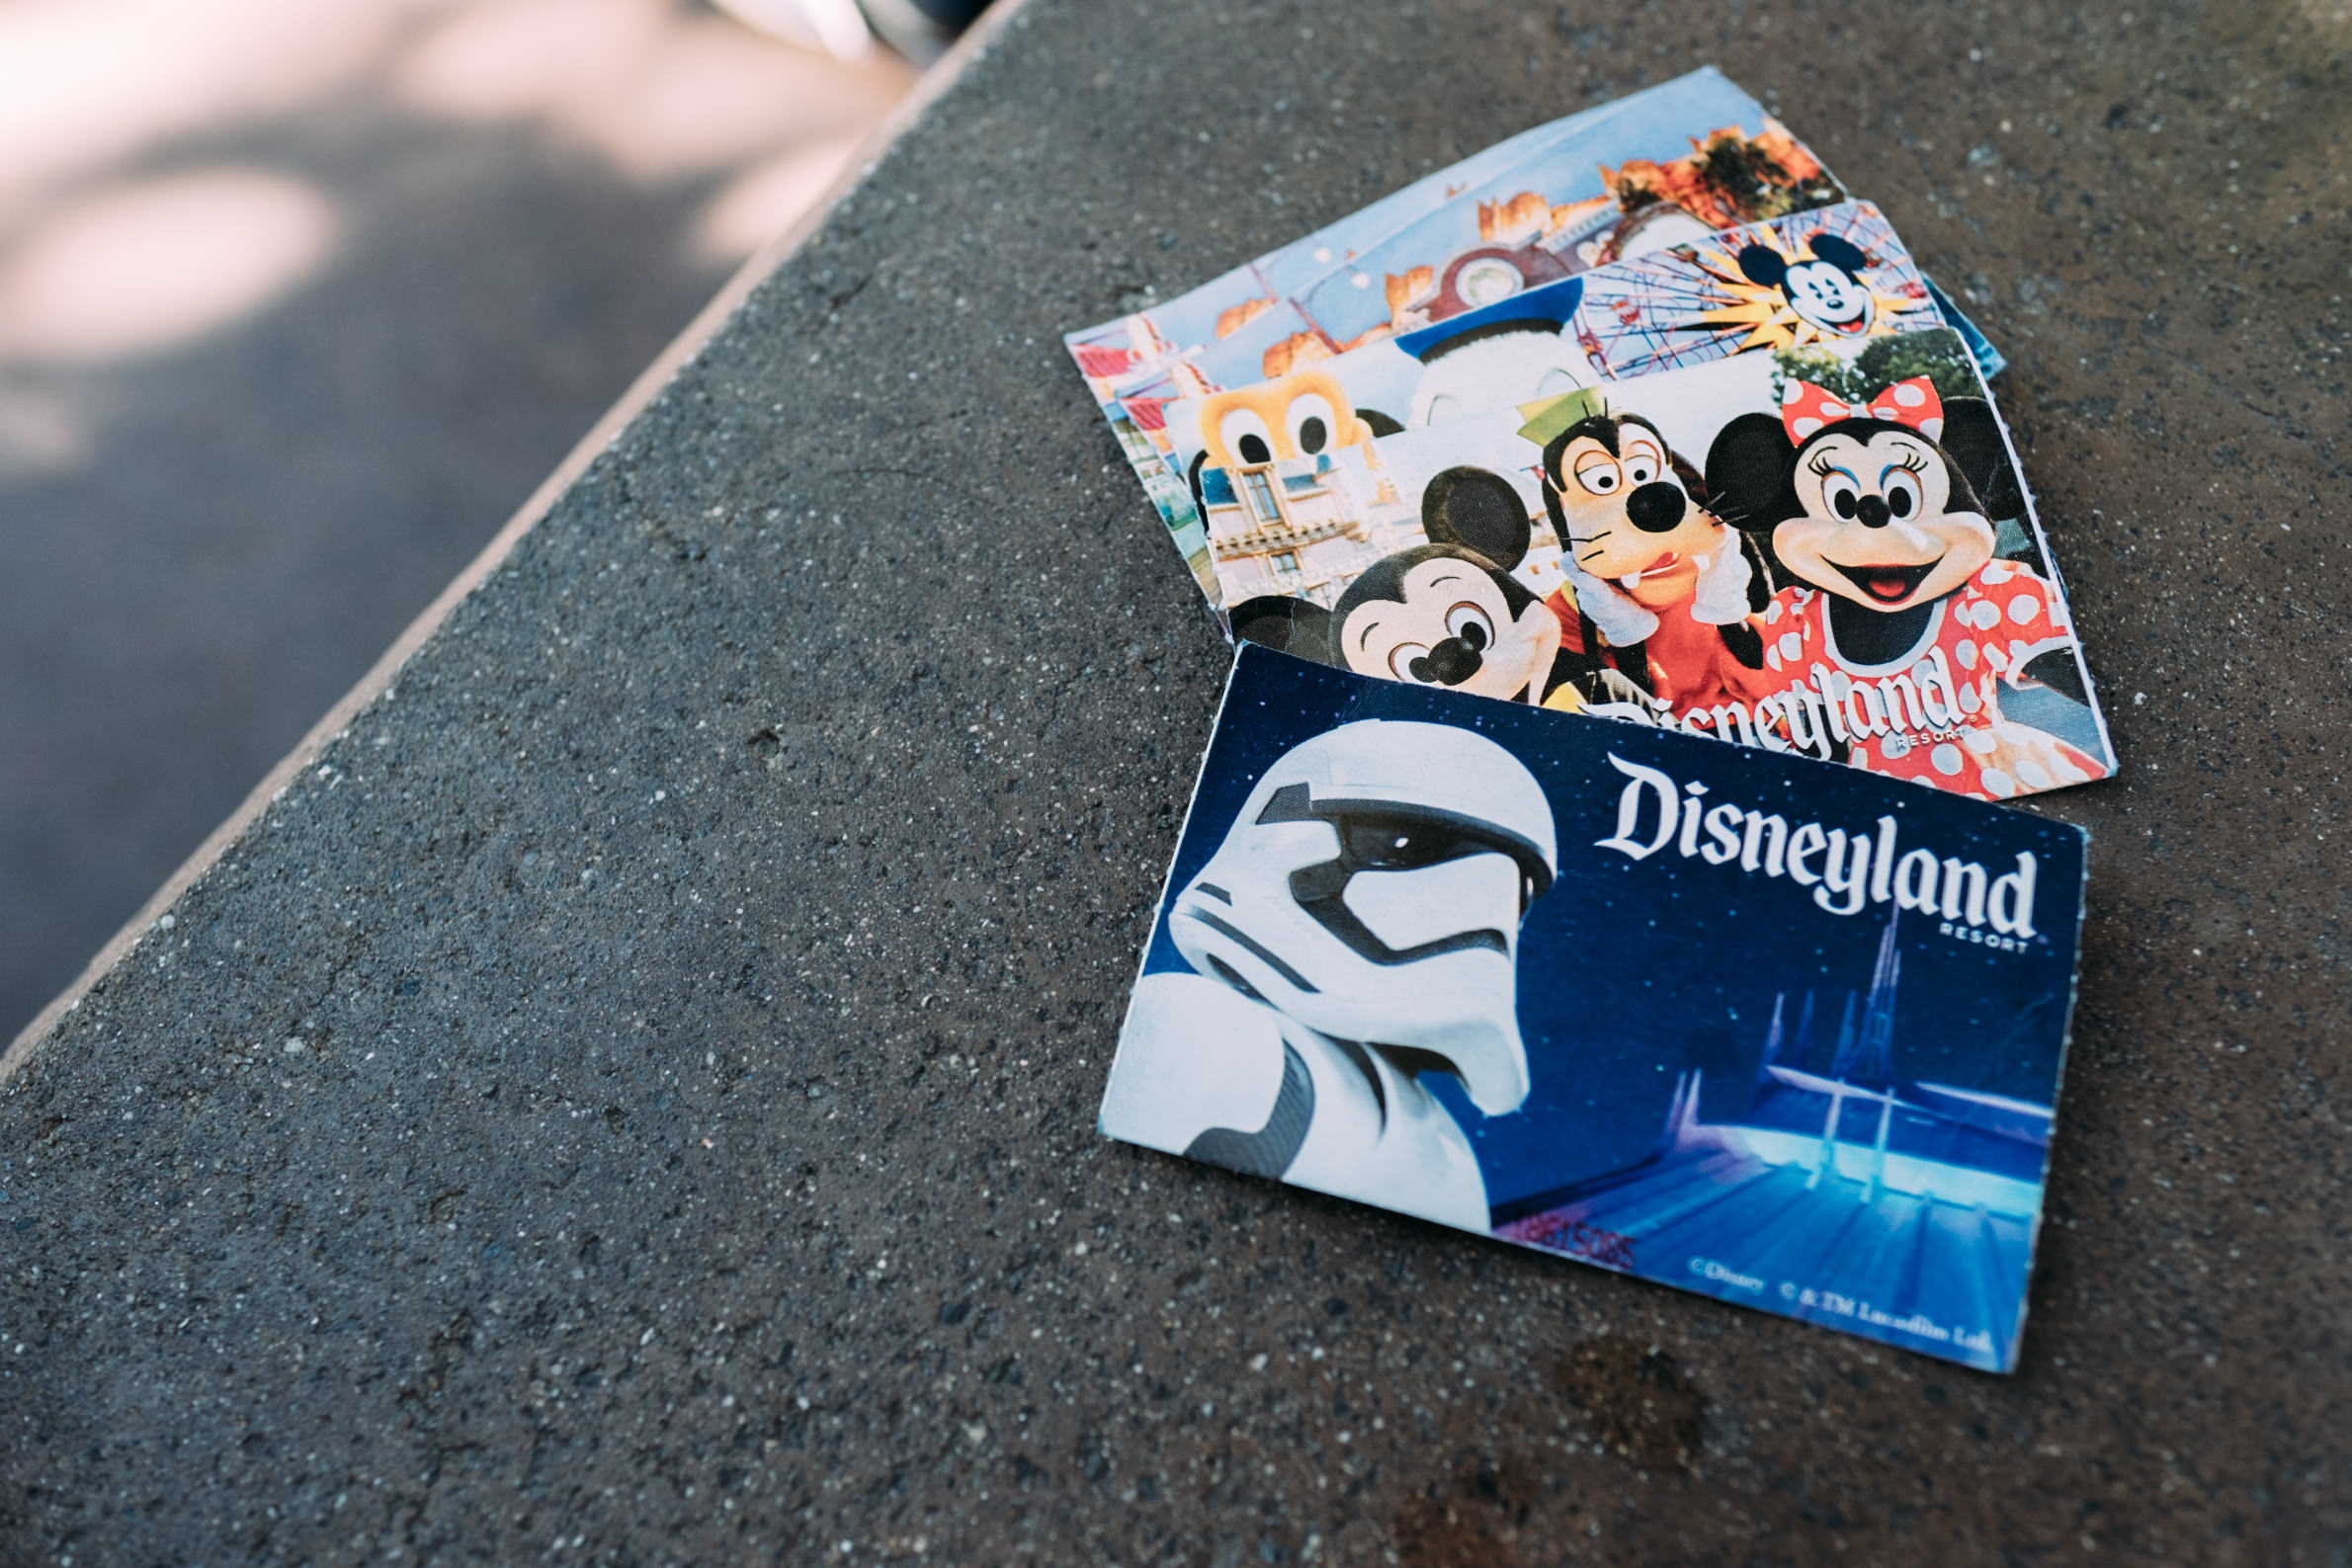 picture of physical disneyland tickets